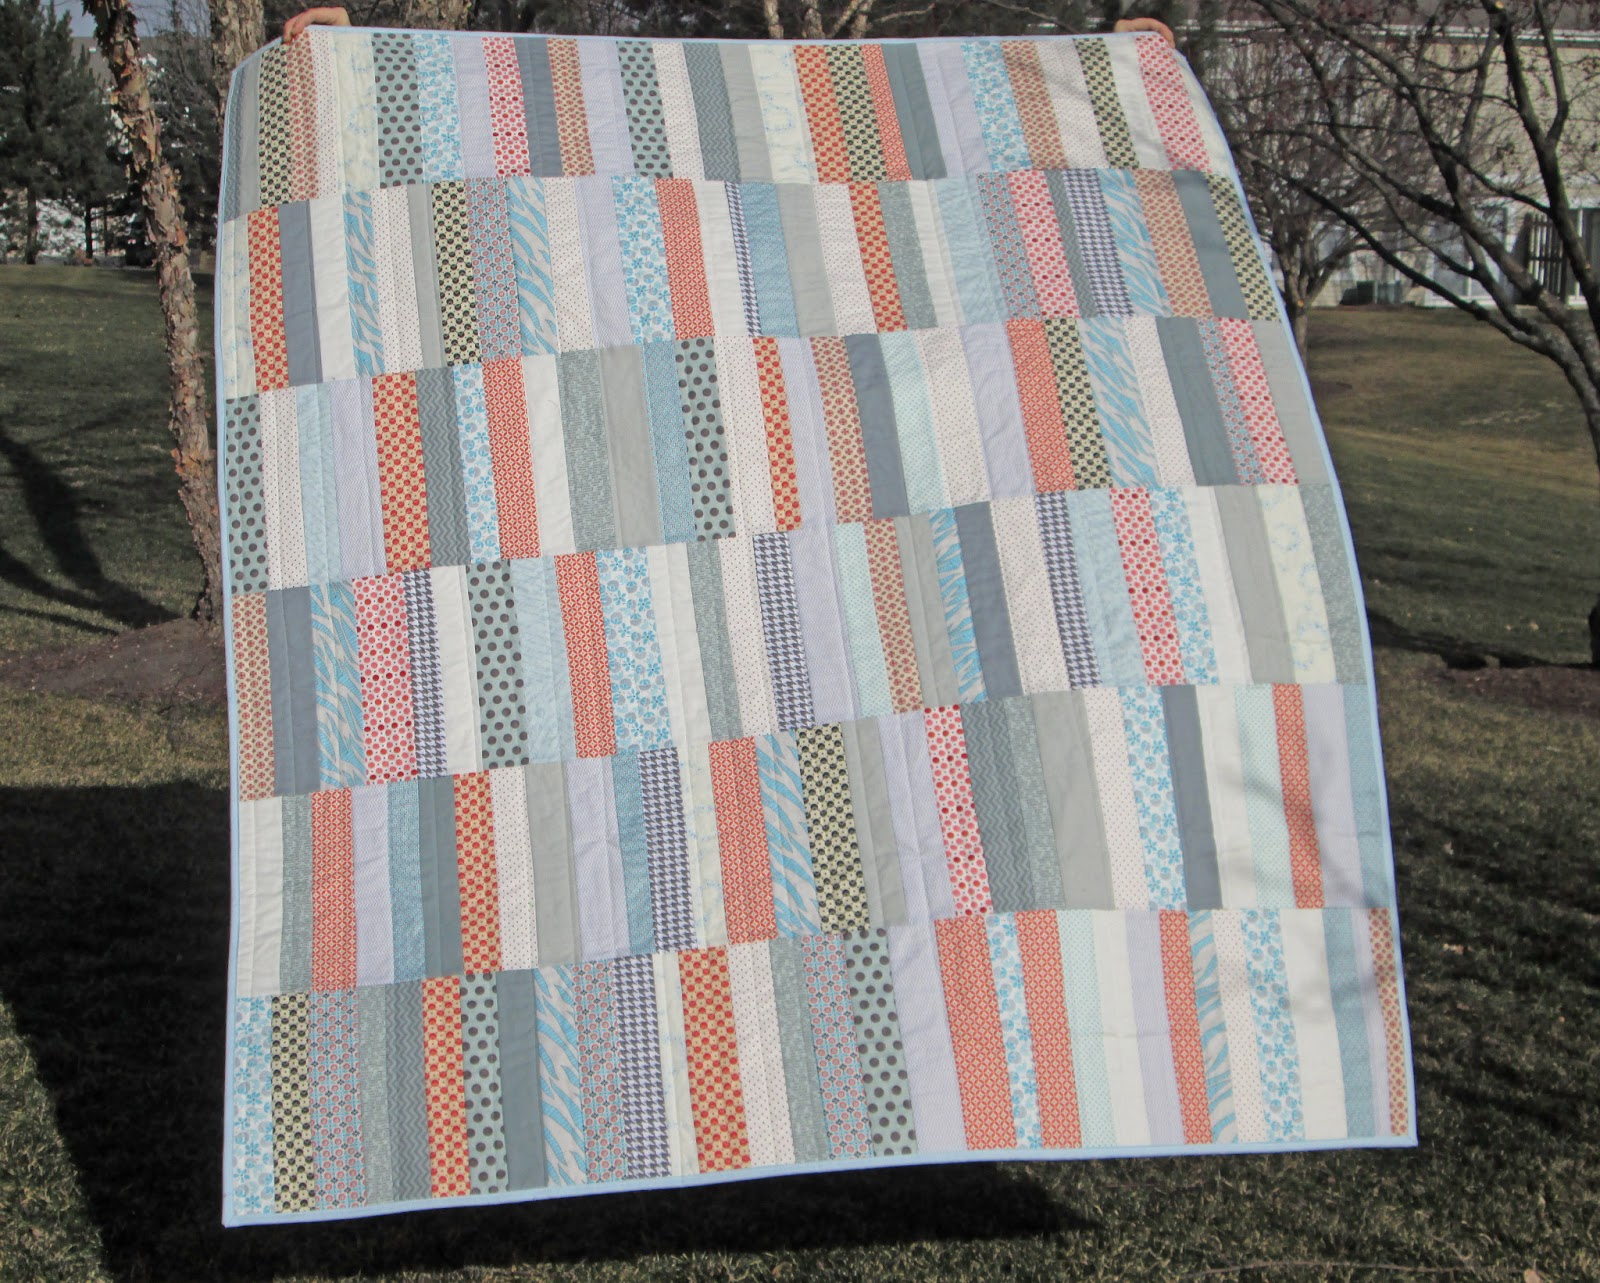 Strip Quilt Patterns For Free : s.o.t.a.k handmade: strip quilt {finished}